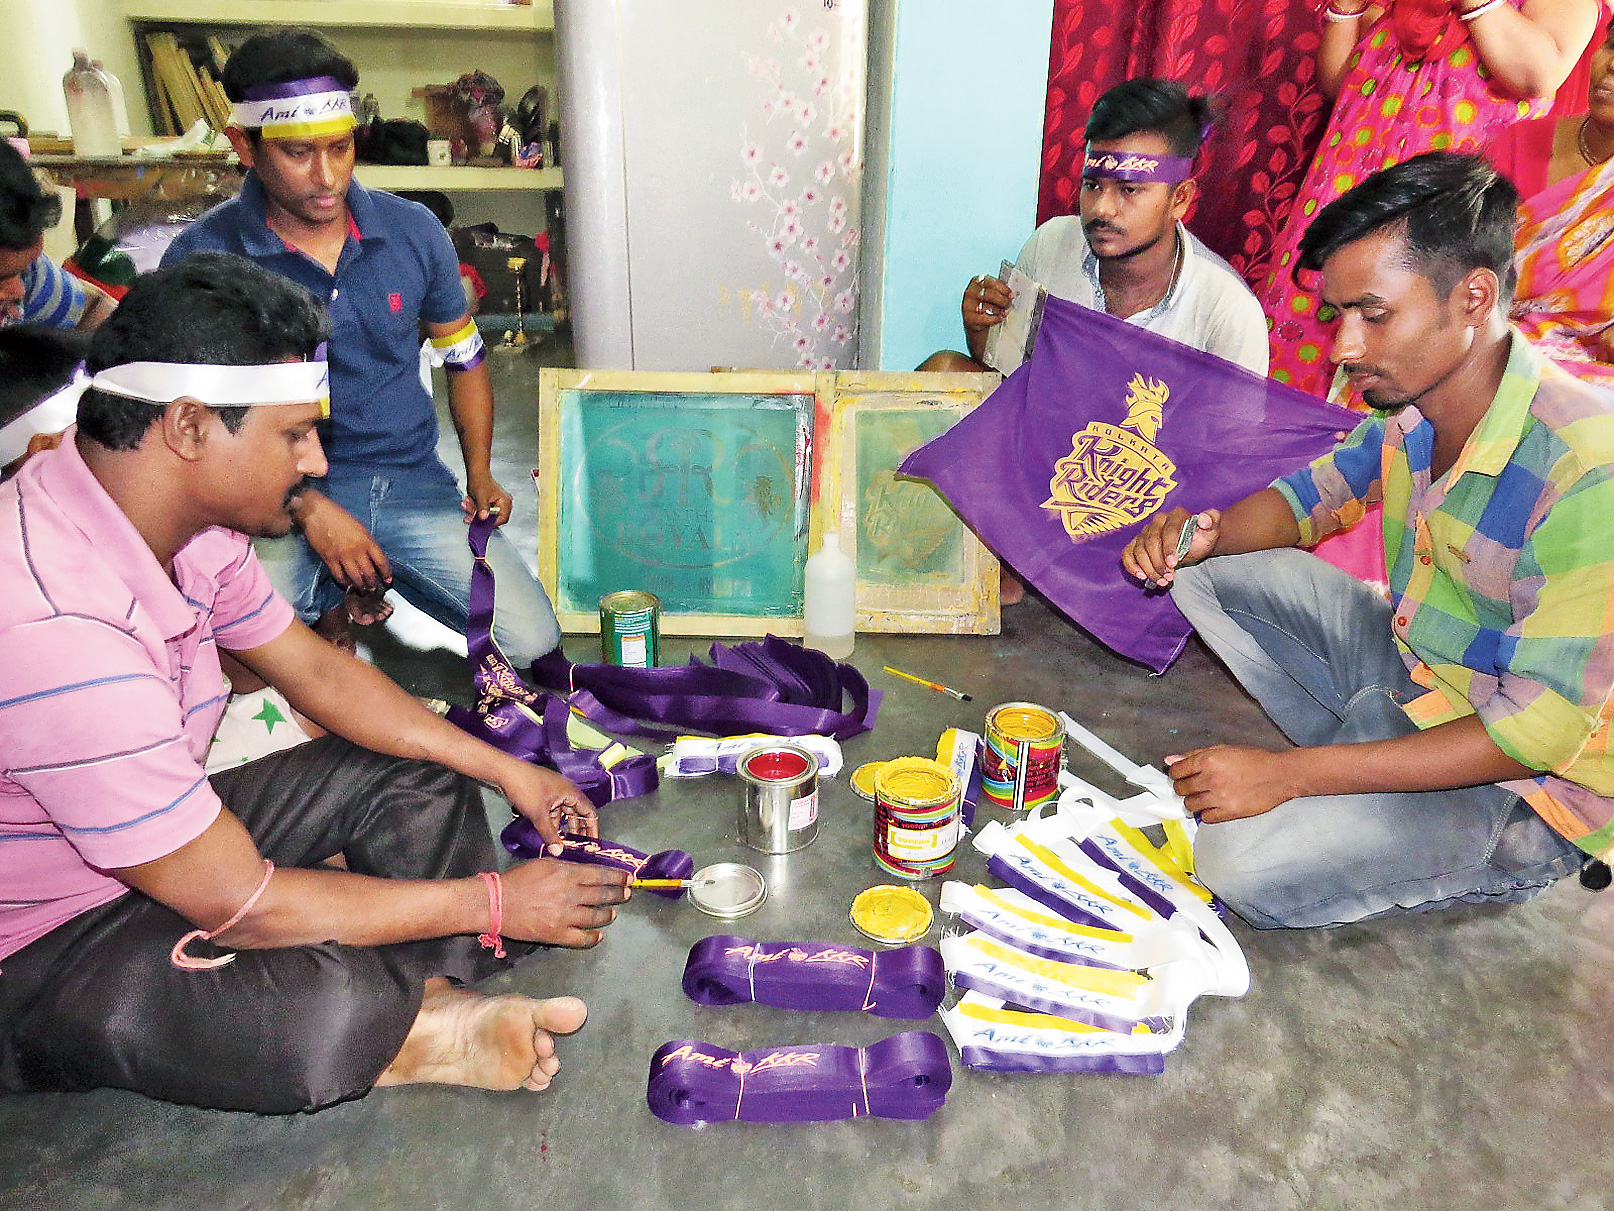 Boys in Yogendranagar ready fan gear before heading out to the Eden Gardens on match day.